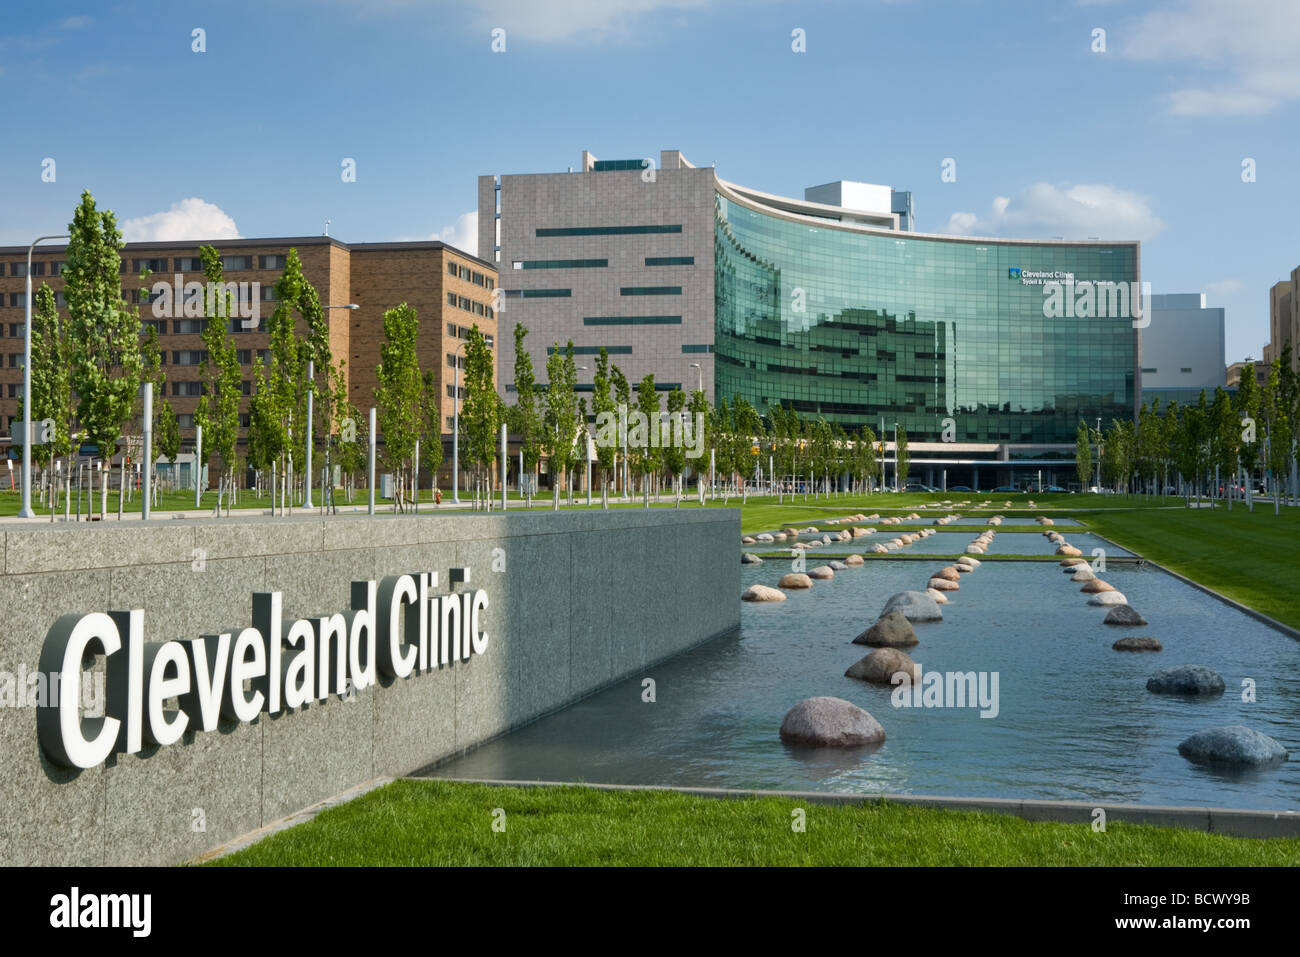 Cleveland Clinic excellent research hospital in Cleveland Ohio - Stock Image